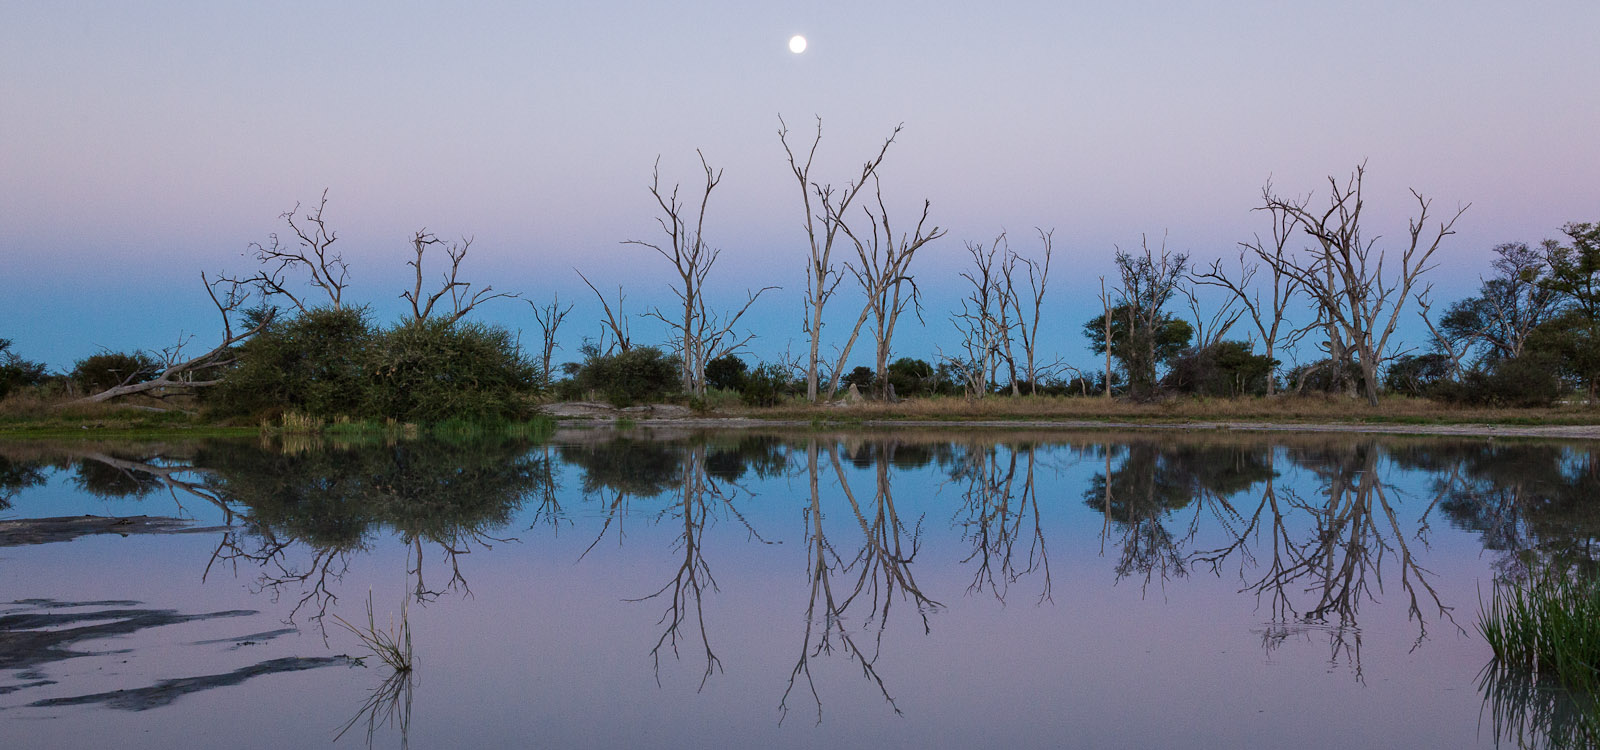 Dusk at a watering hole in the Okavango Delta, Botswana, Africa. The moon is just rising and the air is still. This is a watering hole near Chitabe Lediba Safari Camp - part of Wilderness Safaris. Photo © 2012 Jay Graham, all rights reserved